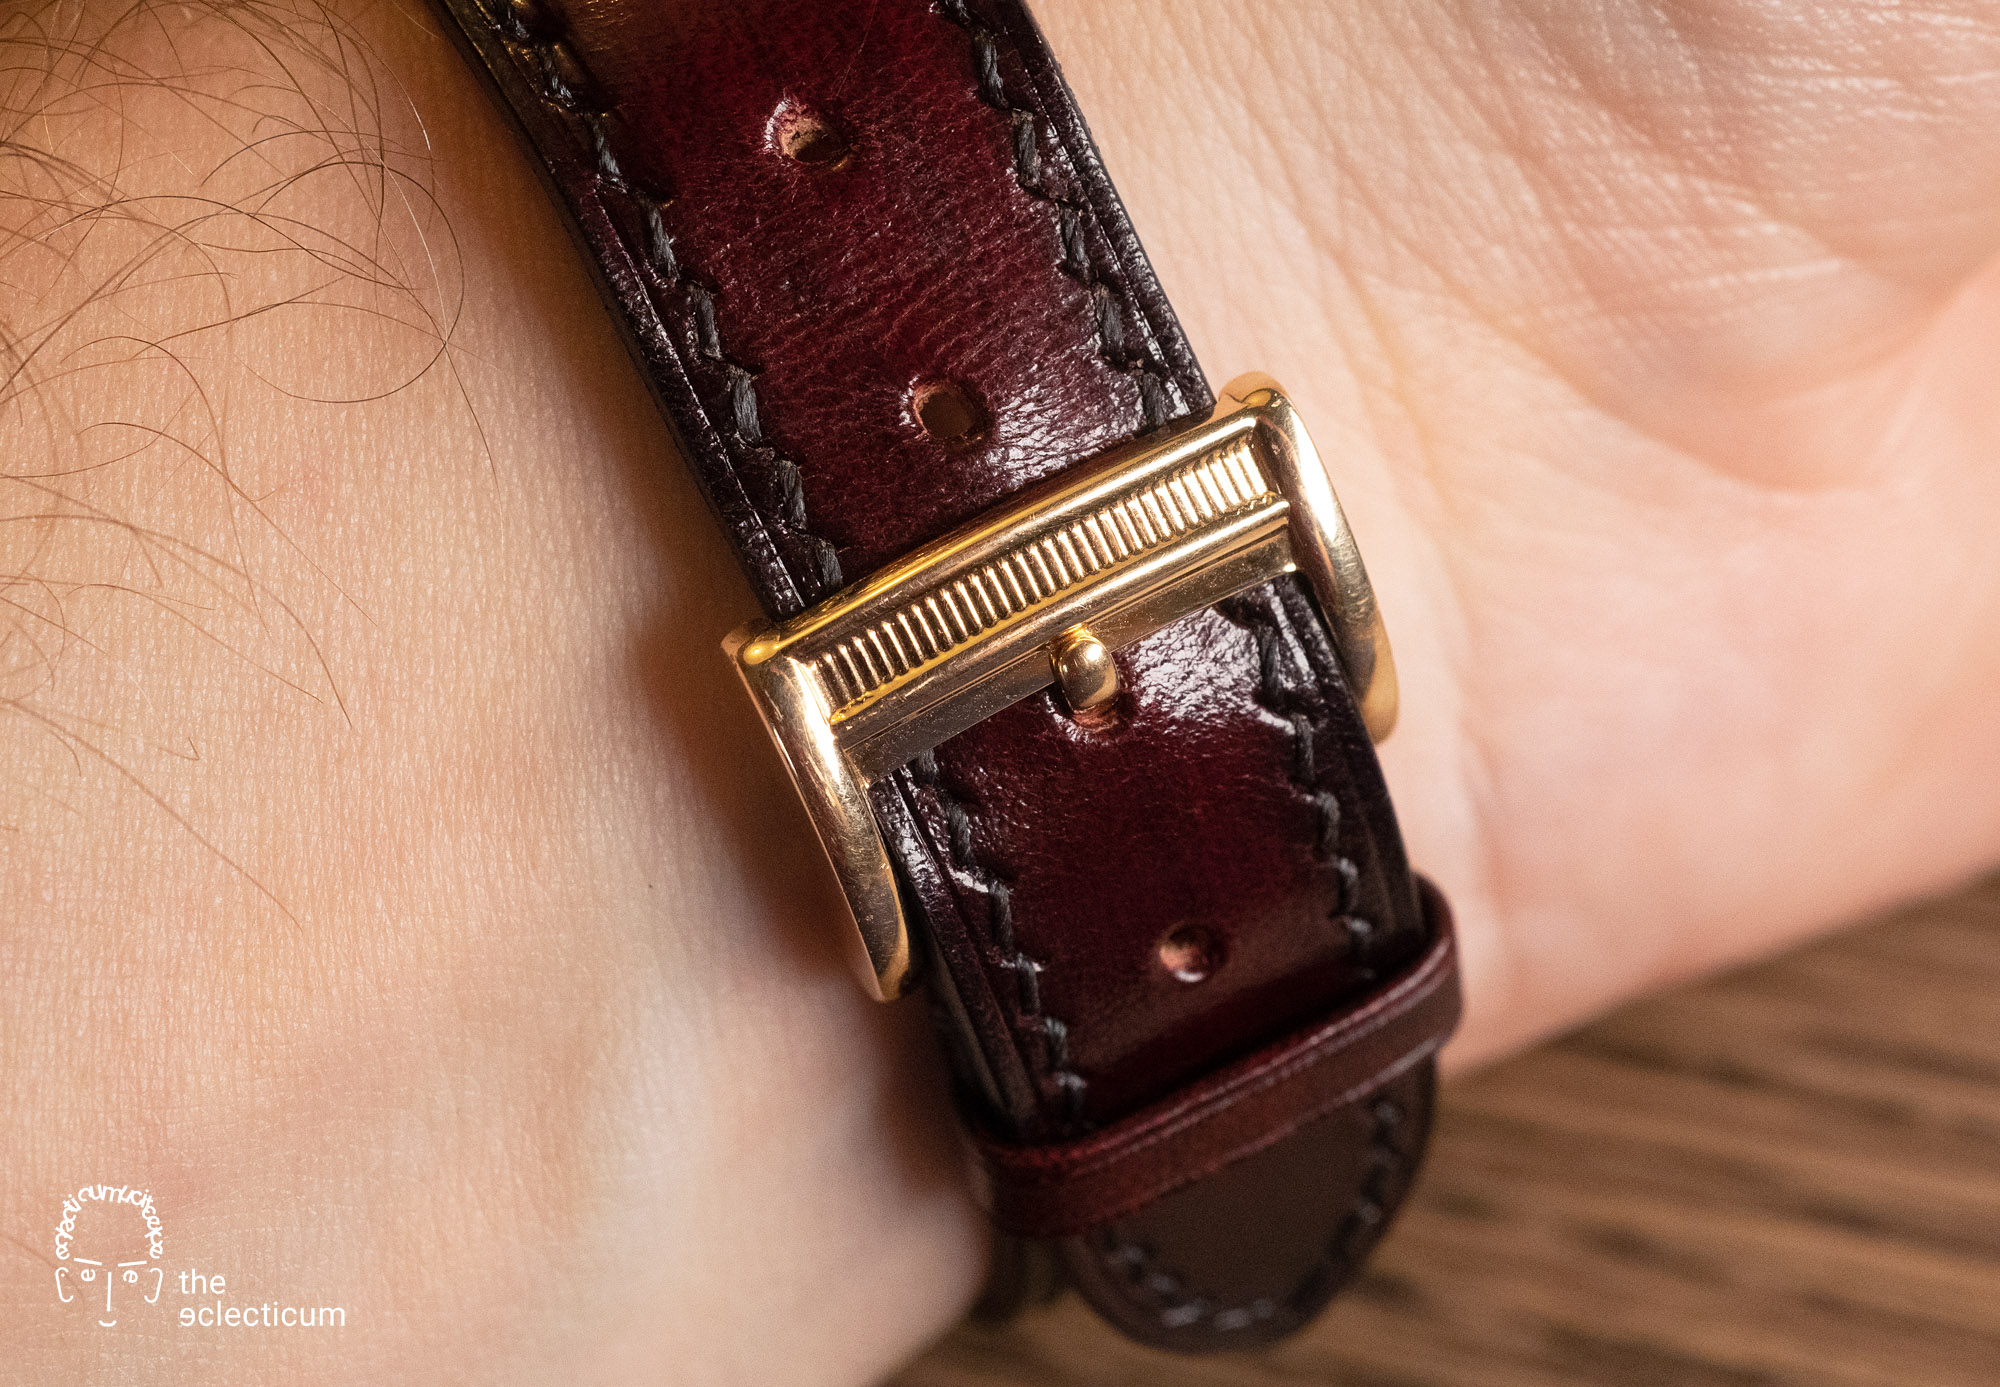 Parmigiani Ionica Hebdomadaire red gold mother-of-pearl buckle